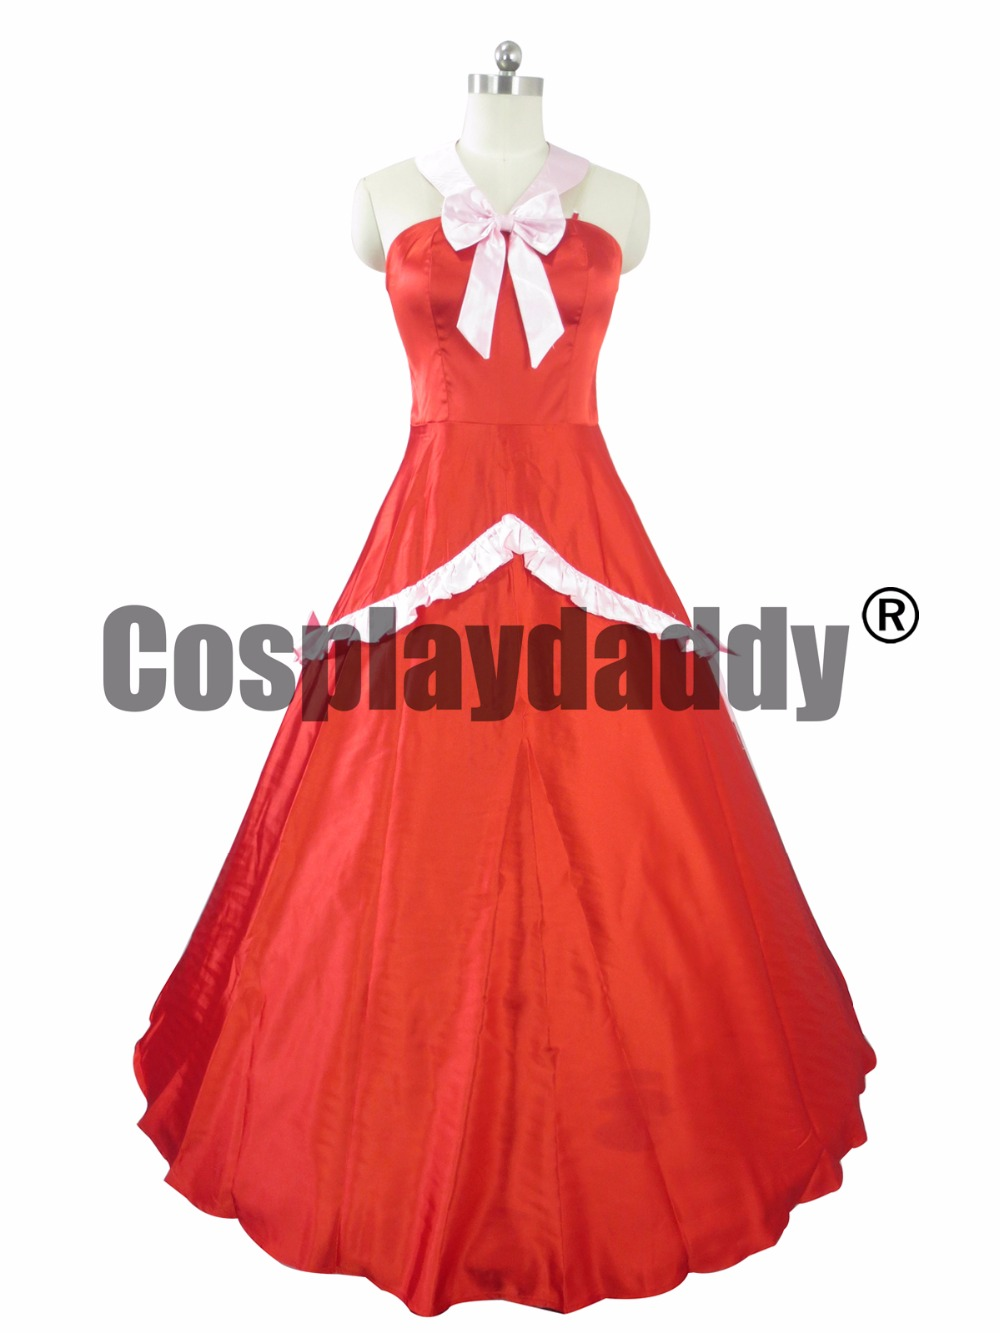 Fairy Tail S-Class Mage Mirajane Strauss Red Dress Usual Outfit Cosplay Costume C018